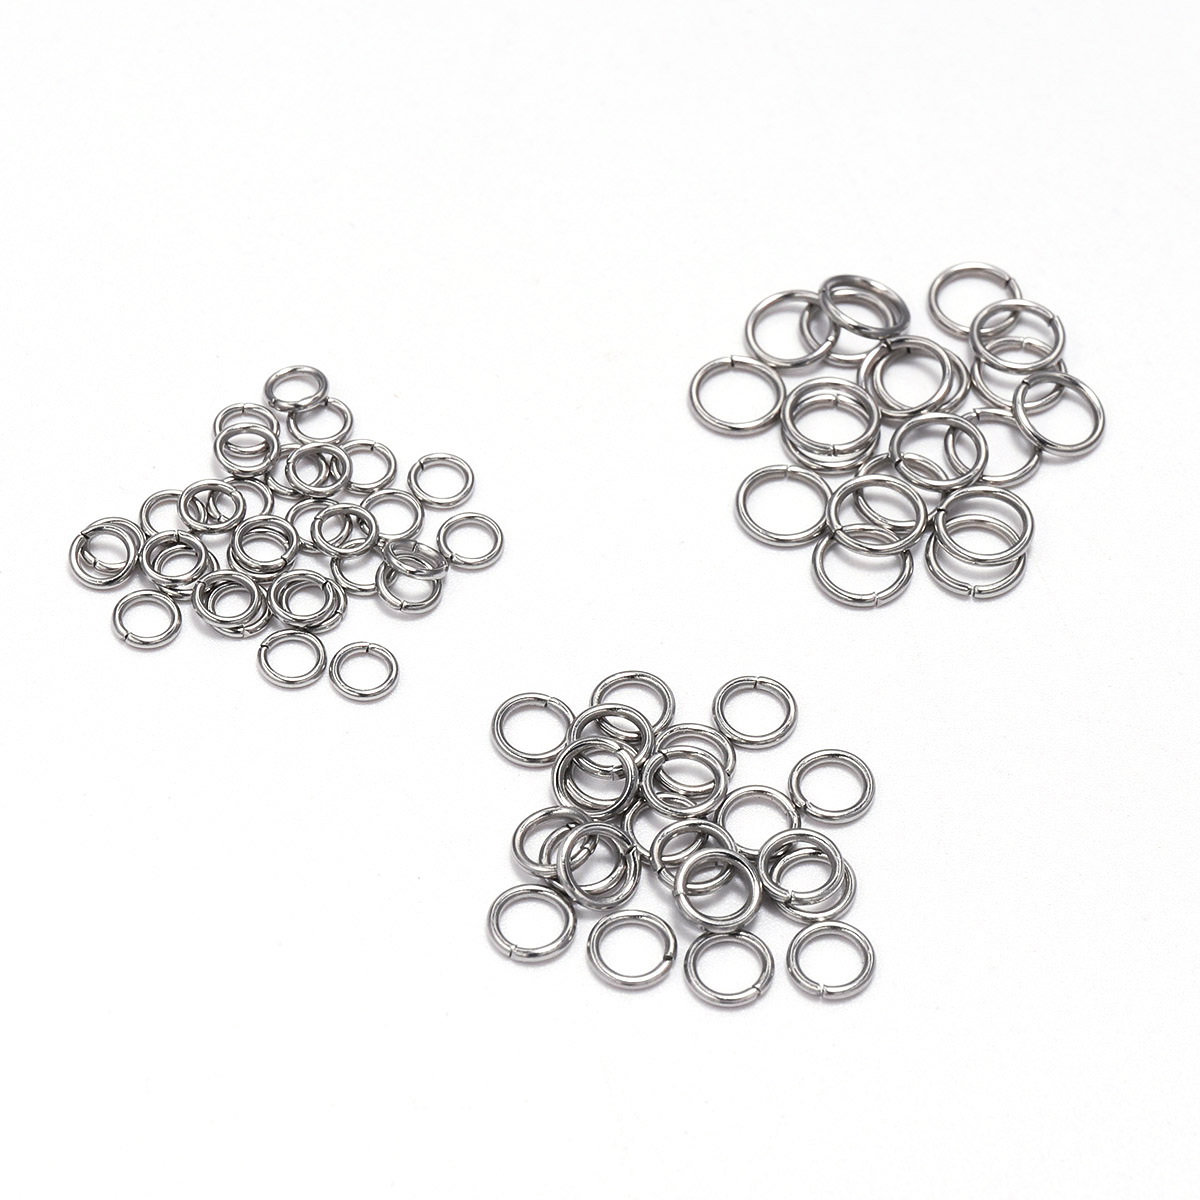 1 Box ROUND OPEN JUMP RING SPLIT RINGS Keychain 4-10mm DIY Jewelry Charms